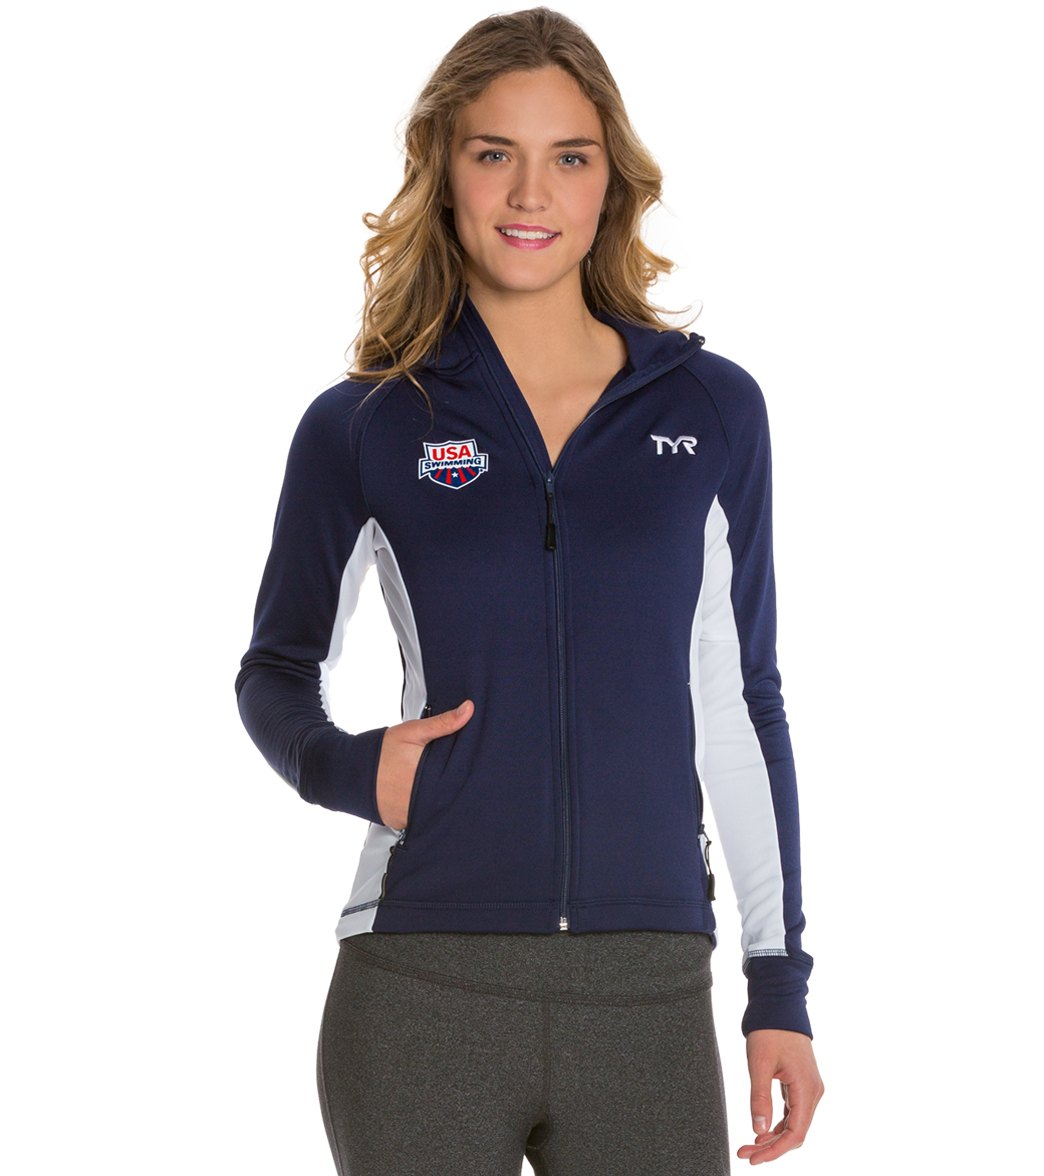 TYR USA Swimming Women's Alliance Victory Warm Up Jacket at ...